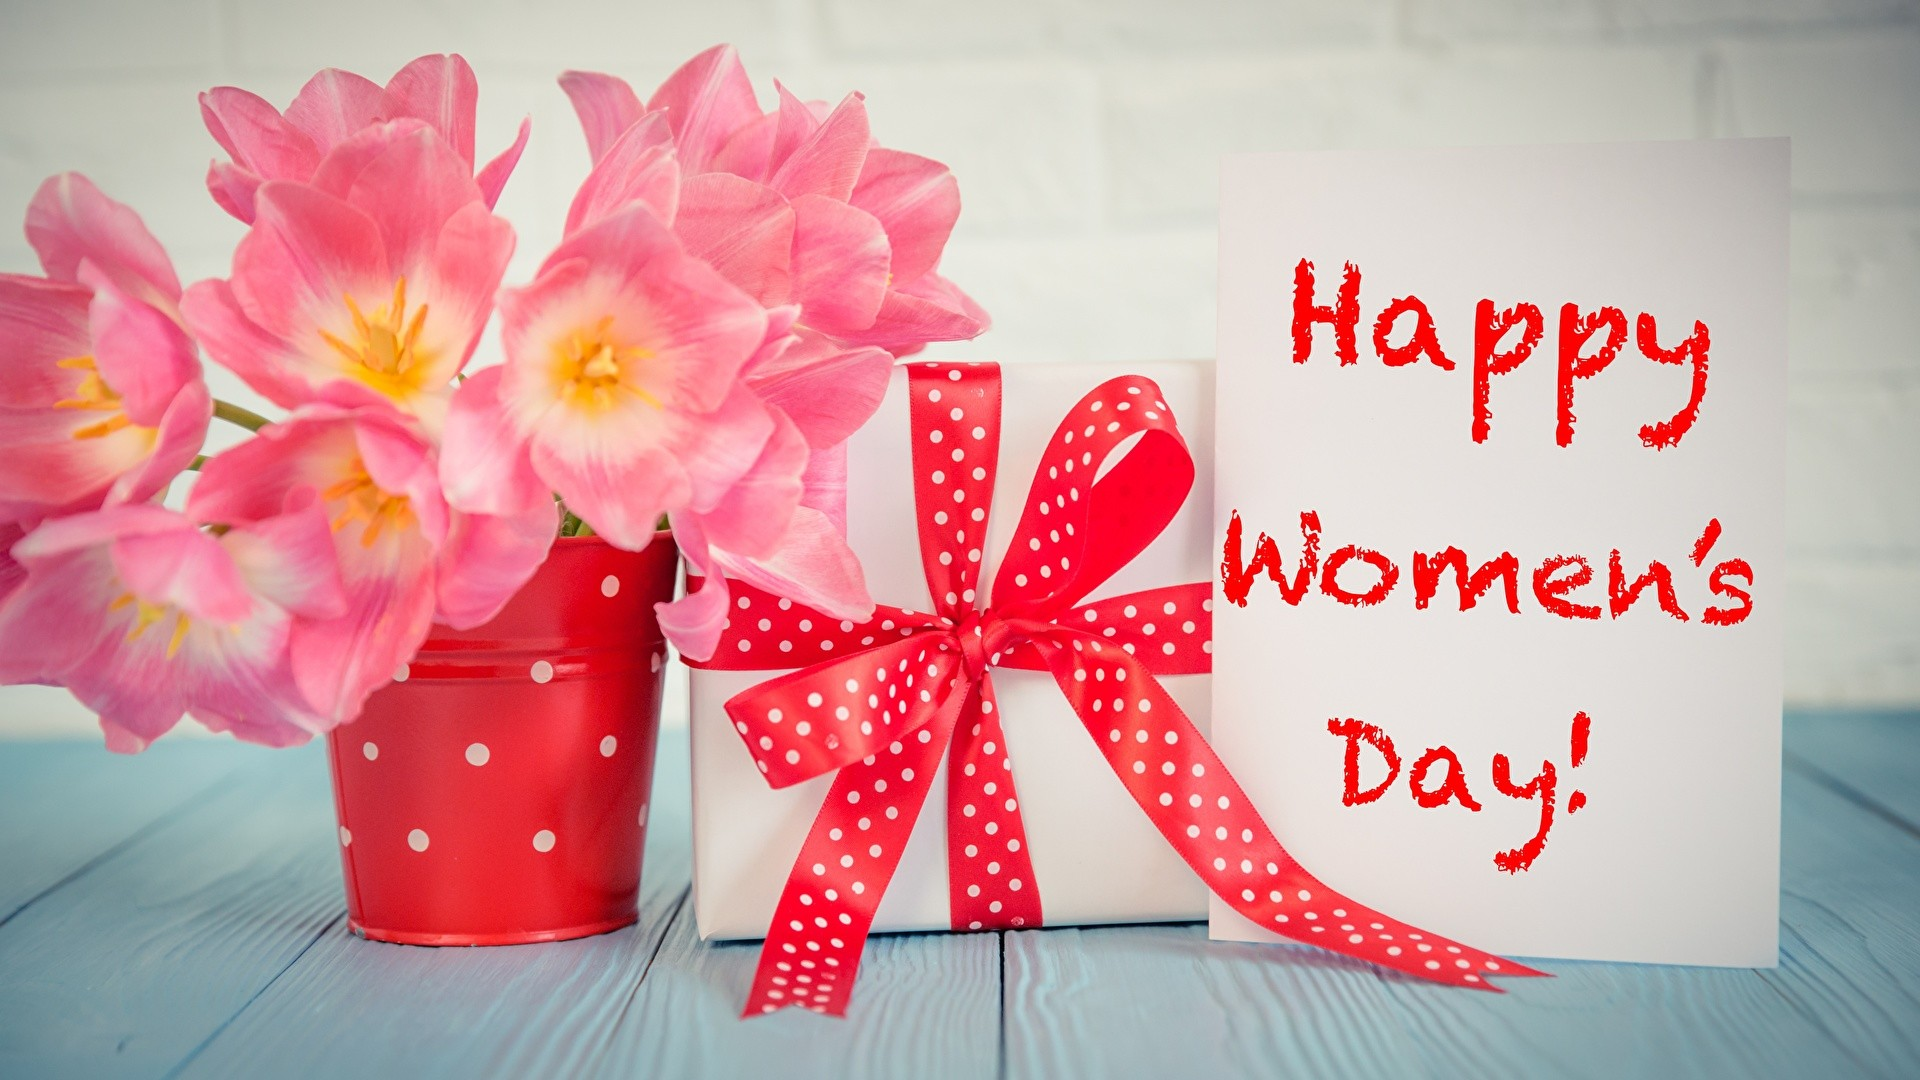 31 Happy Womens Day Images   WallpaperBoat 1920x1080